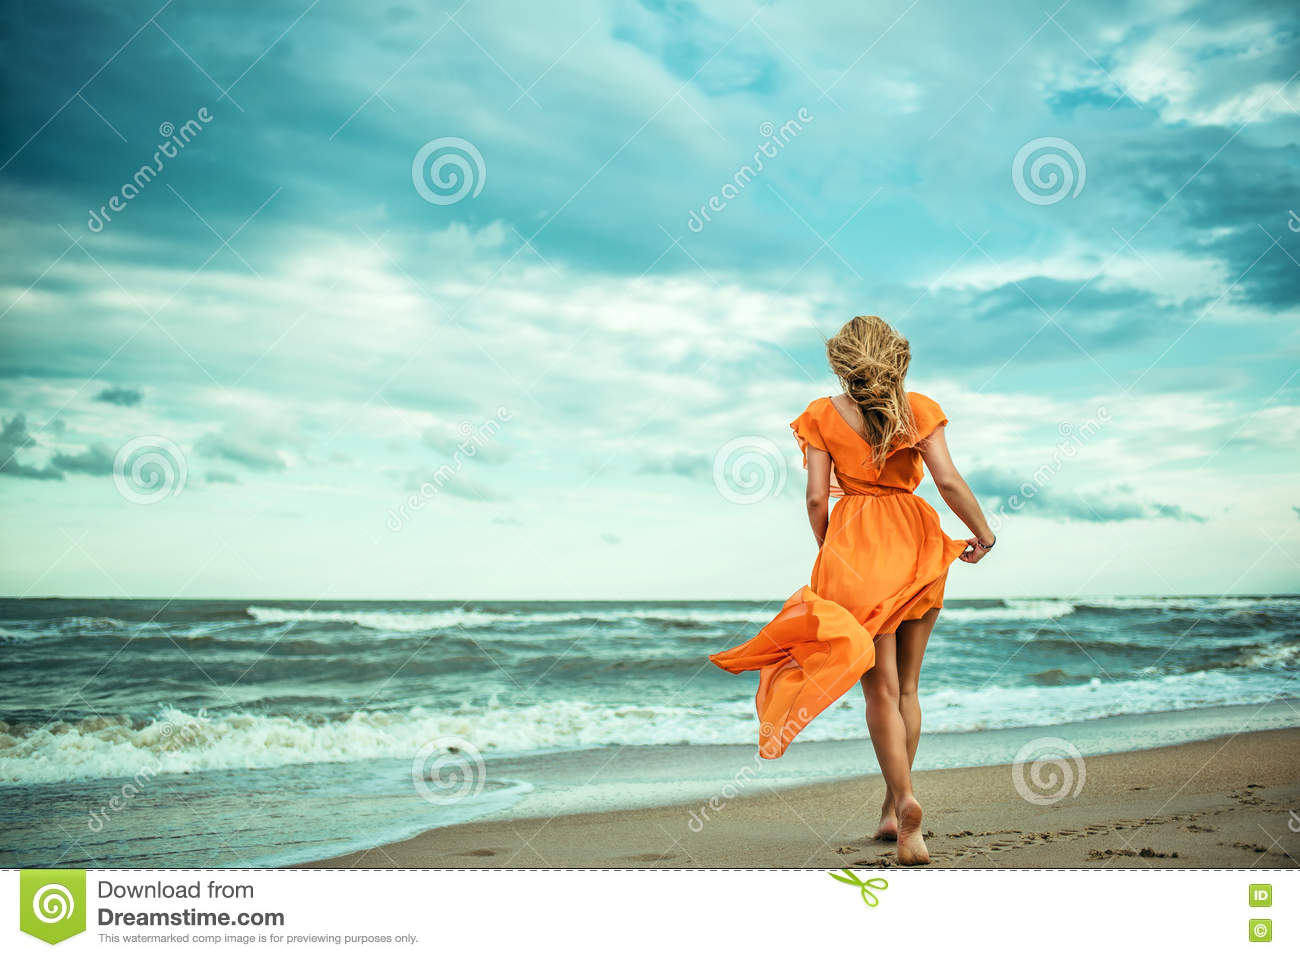 A young slender woman in orange dress is walking barefoot towards the storming sea